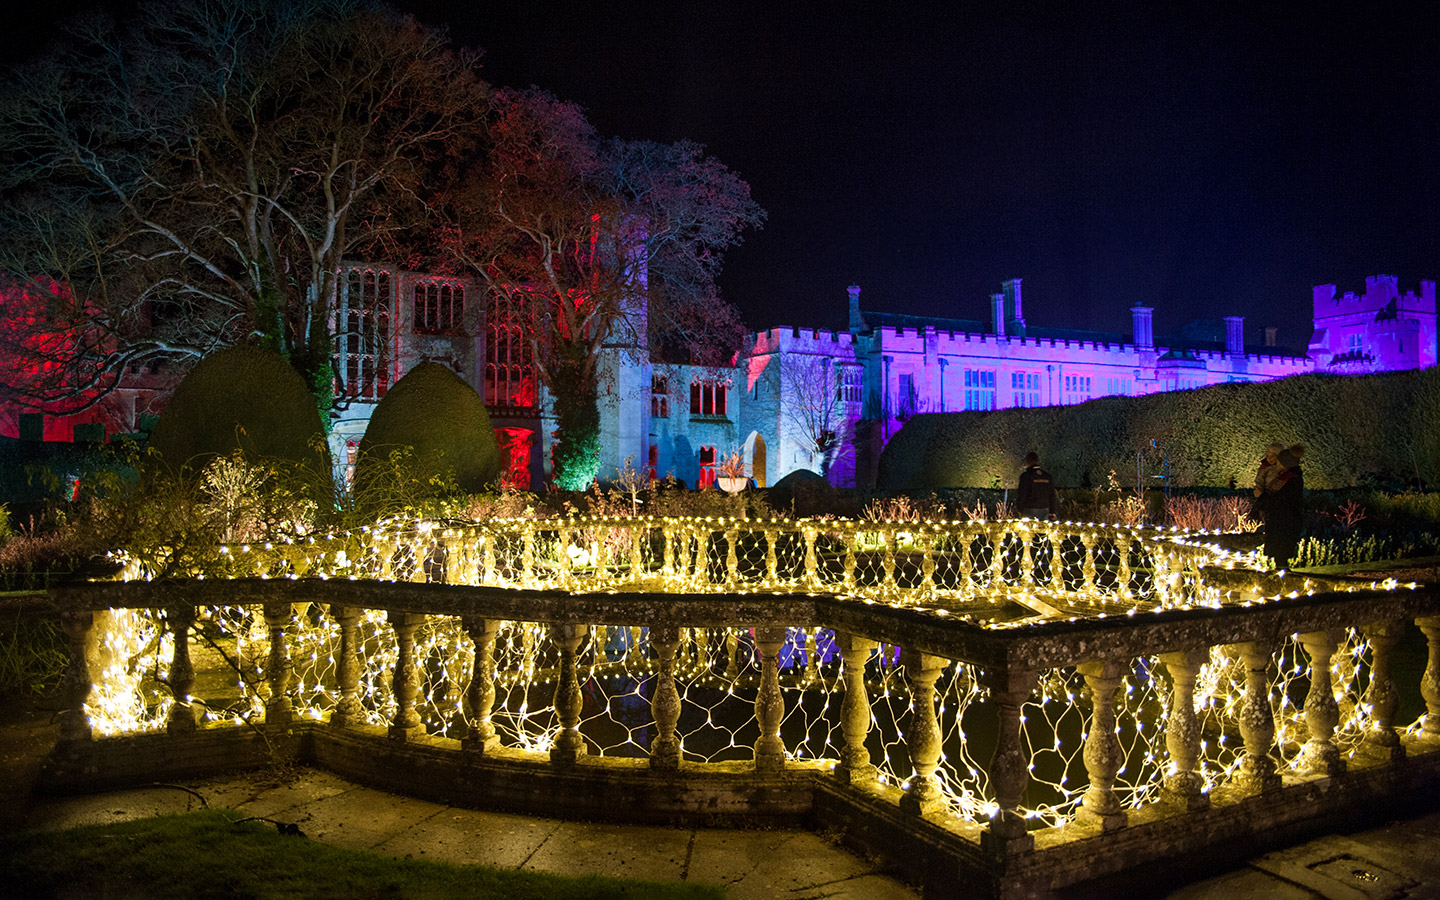 Winter in the Cotswolds: The Spectacle of Light at Sudeley Castle